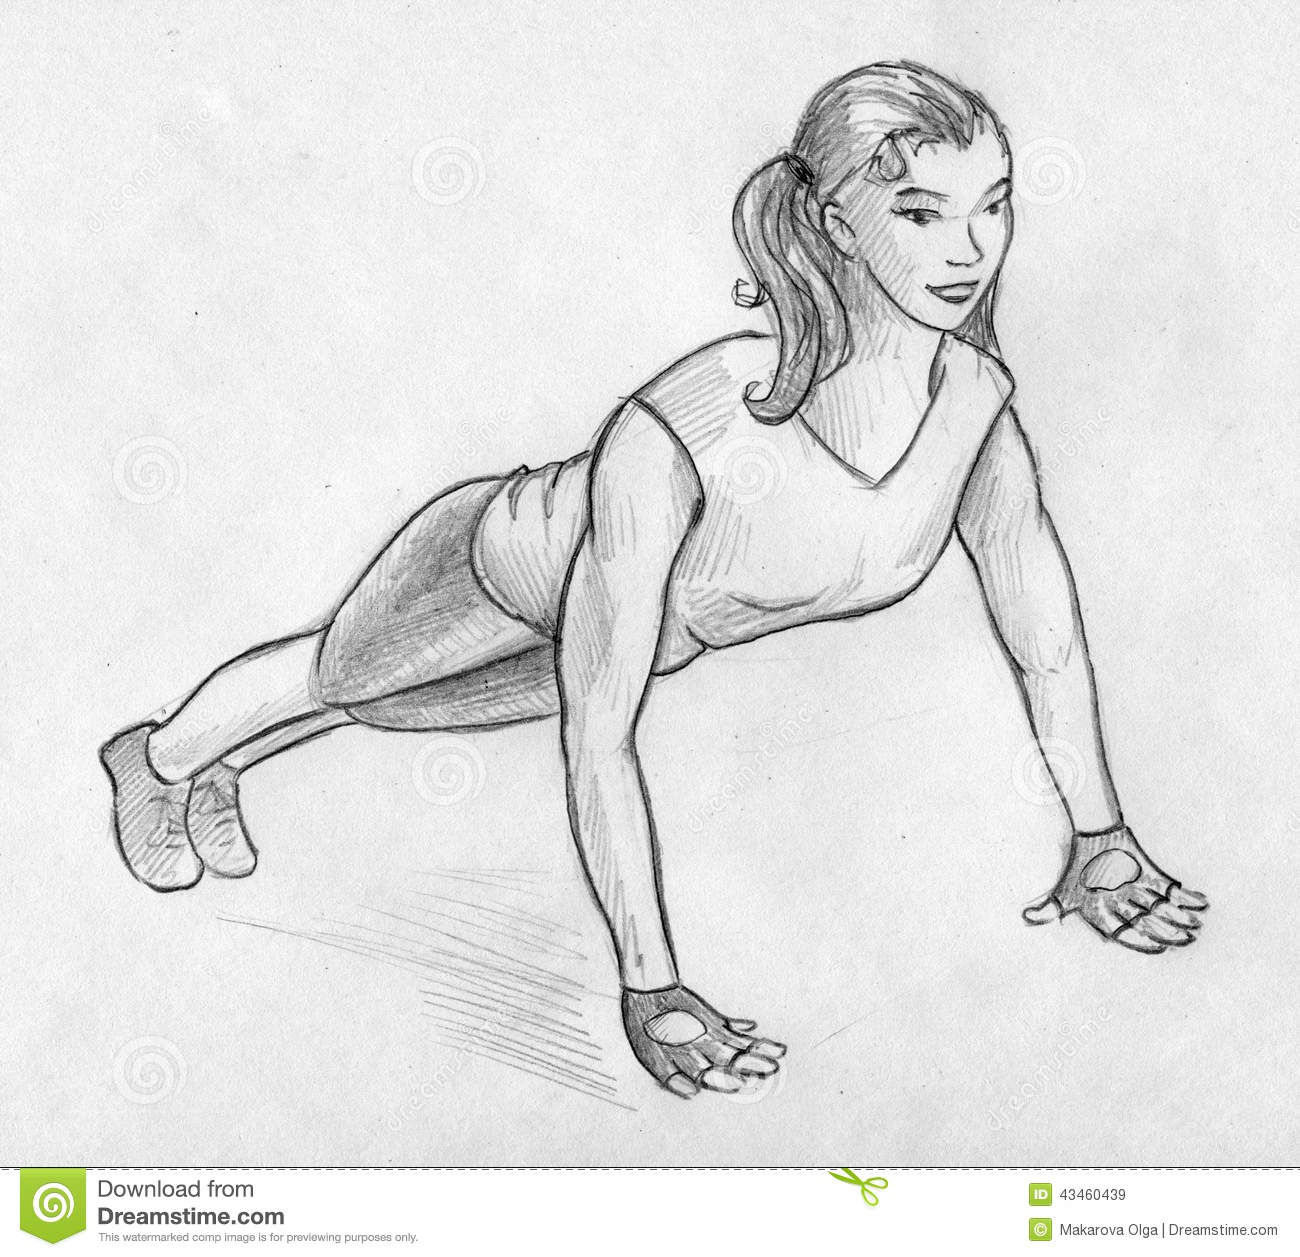 ... girl doing workout exercise on the floor. Hand drawn pencil sketch